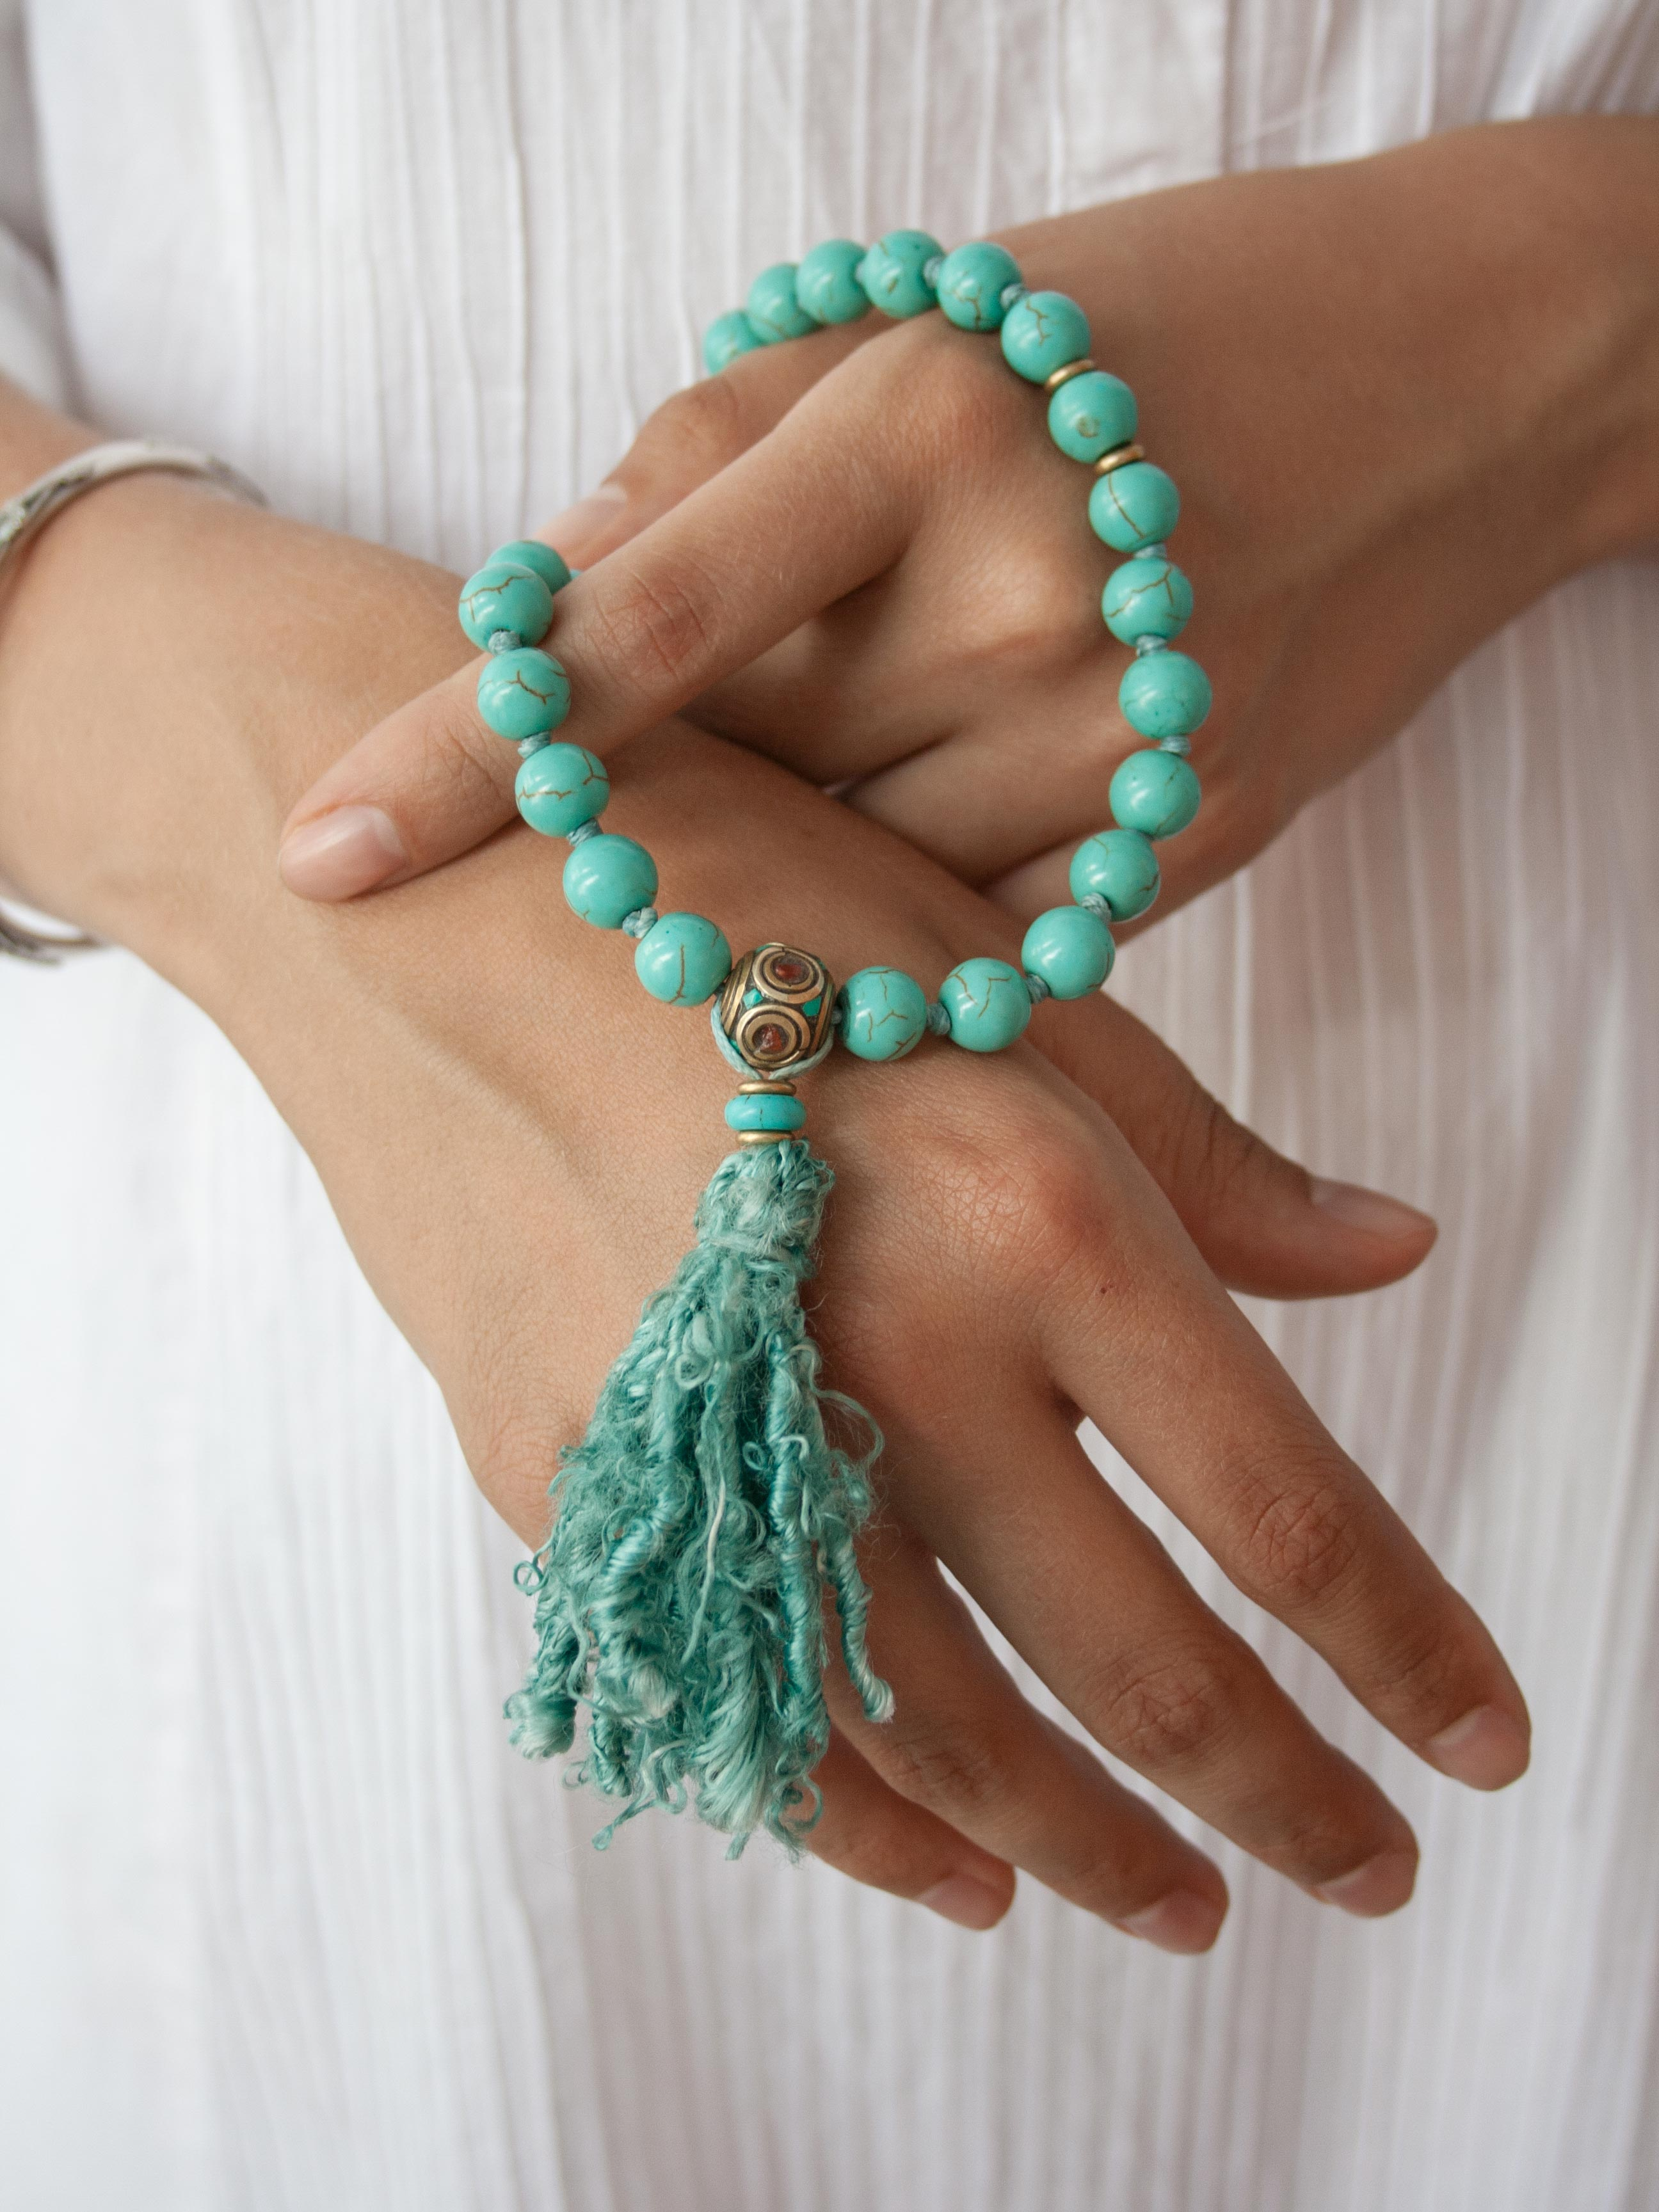 Caprice Hand-Held Mala: 27 beads in 10mm capriccio aqua howlite, with howlite and brass/coral/turquoise Guru setting and sari silk tassel. Hand view.